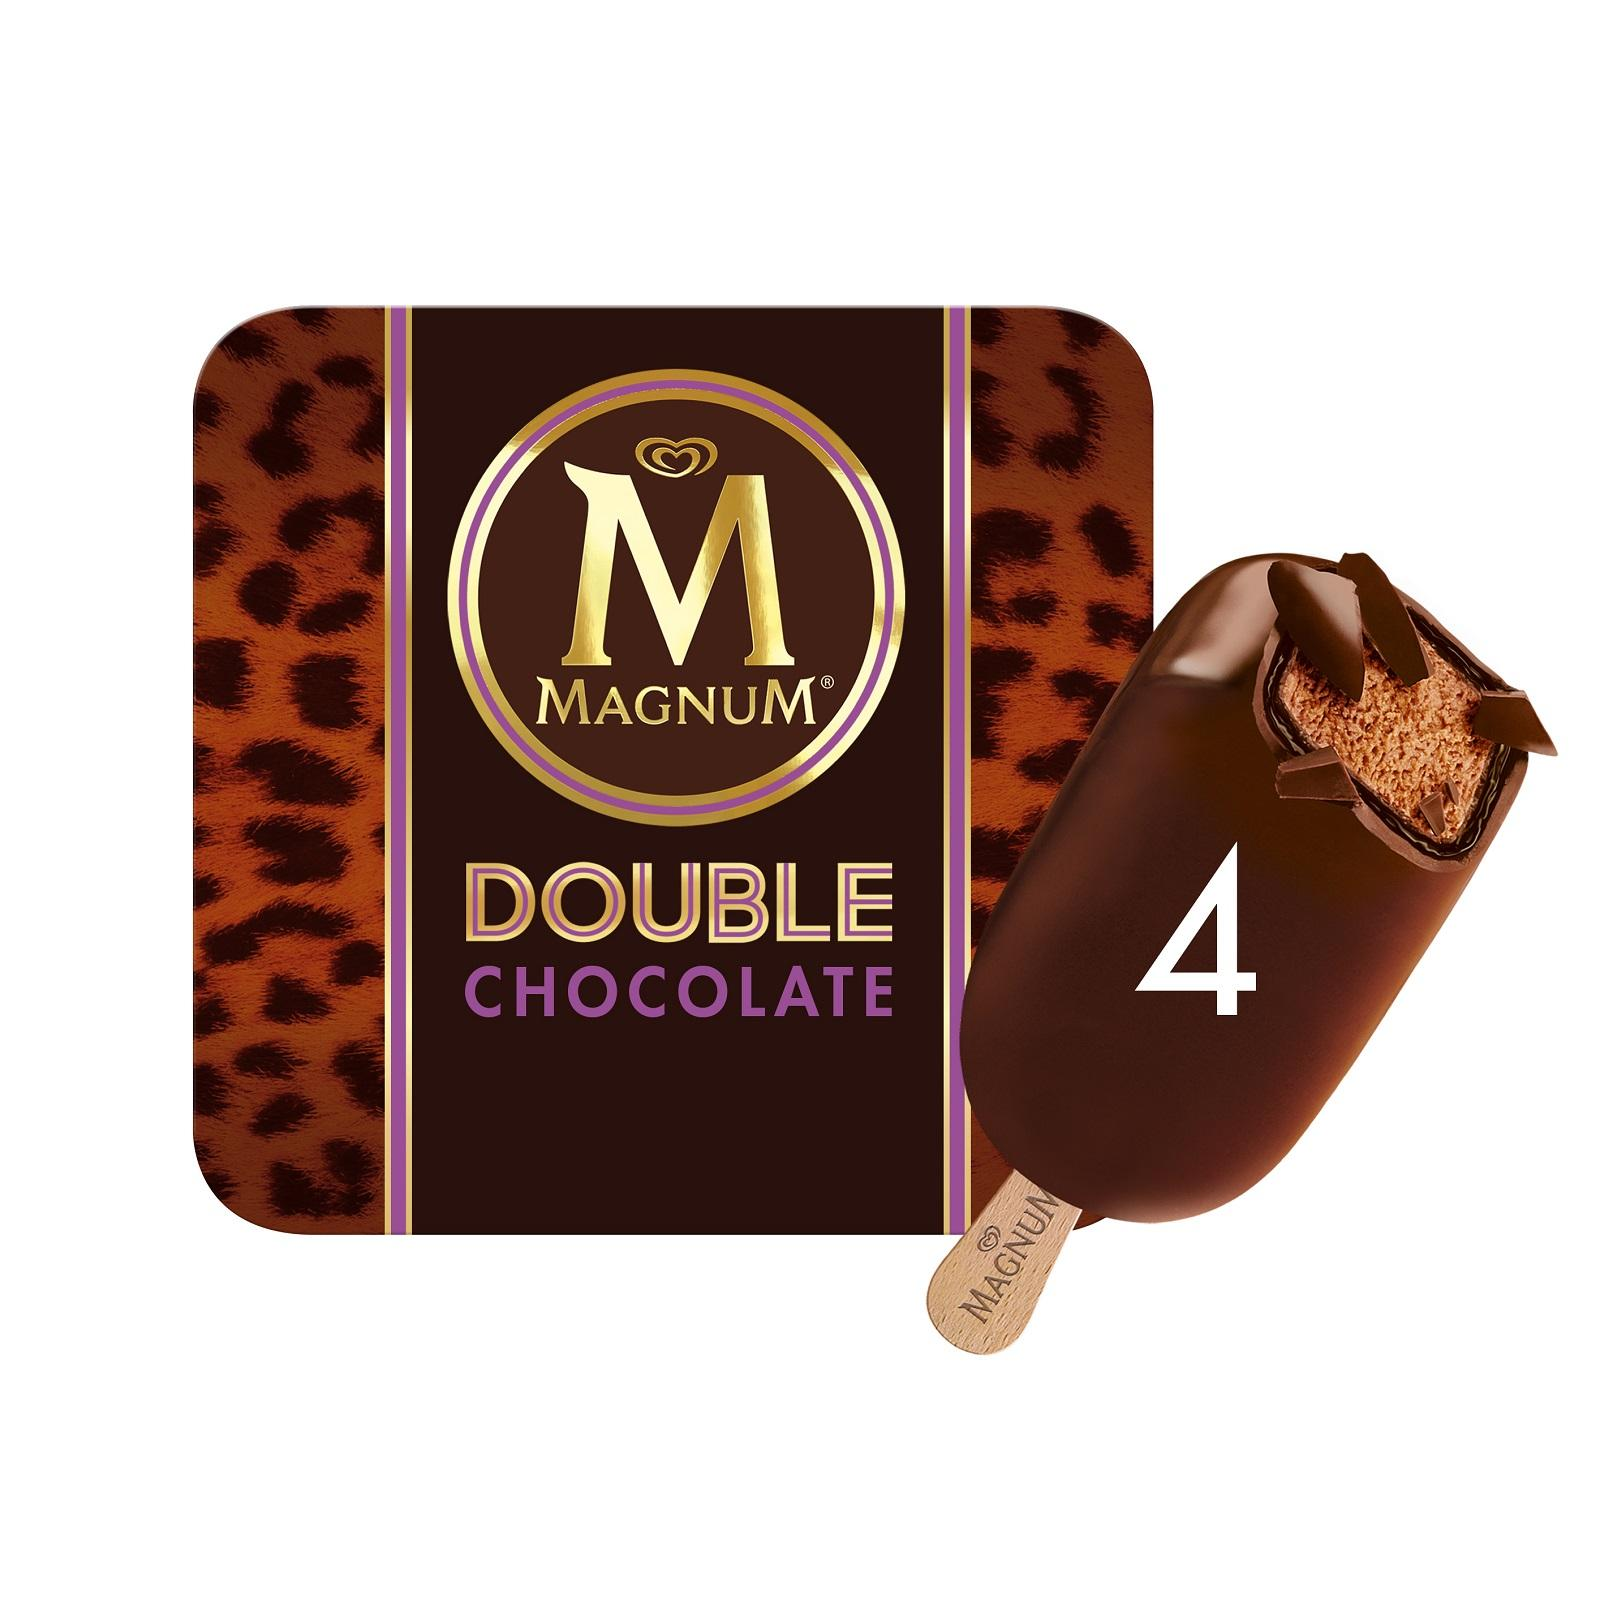 MAGNUM Stick Ice Cream - Double Chocolate 4sX88ml